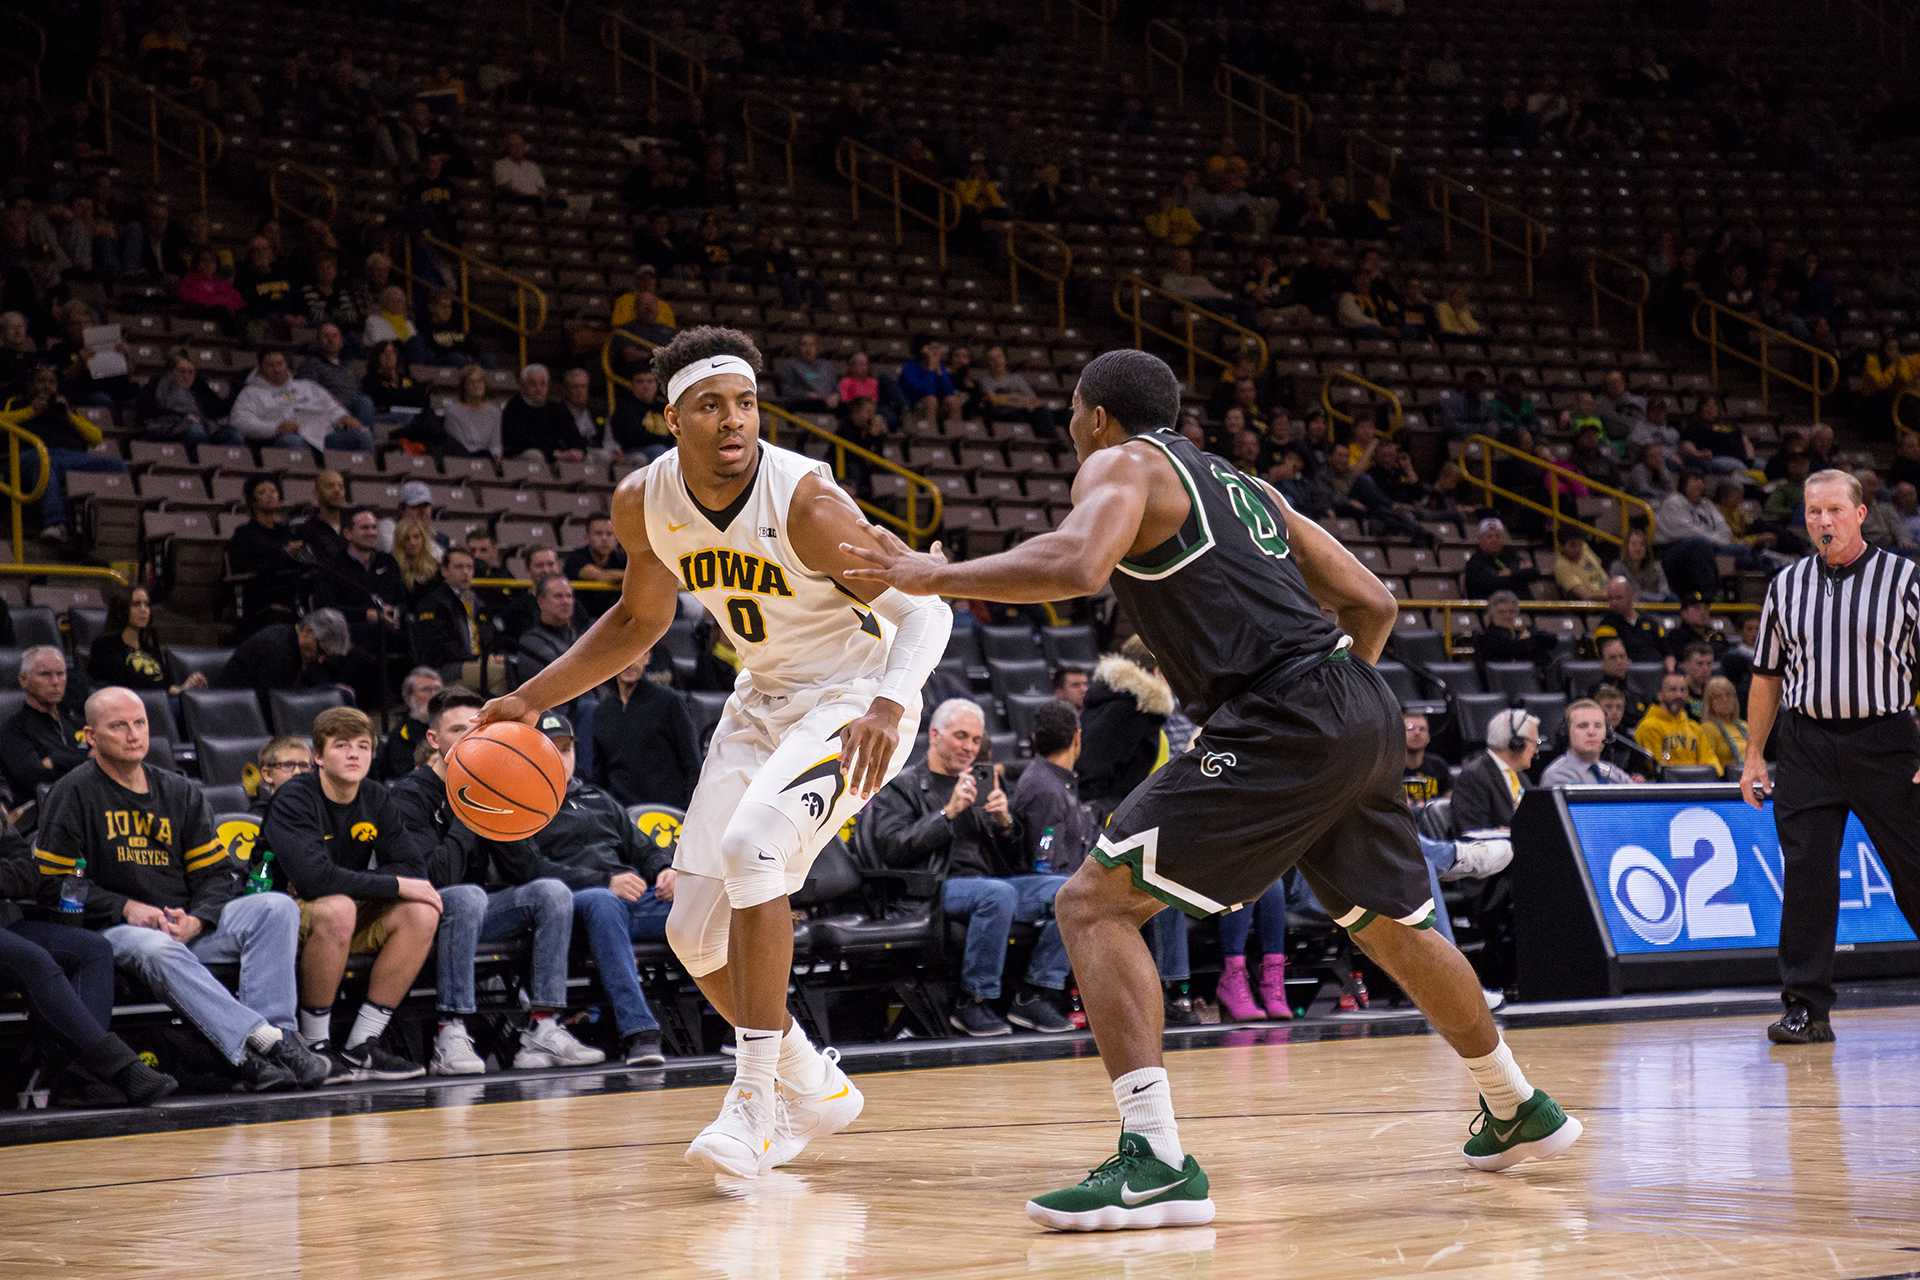 Iowa's Ahmad Wagner sizes up the defense during a game against Chicago State University on Friday, 10. Nov, 2017. The Hawkeyes defeated the Cougars, 95-62. (David Harmantas/The Daily Iowan)